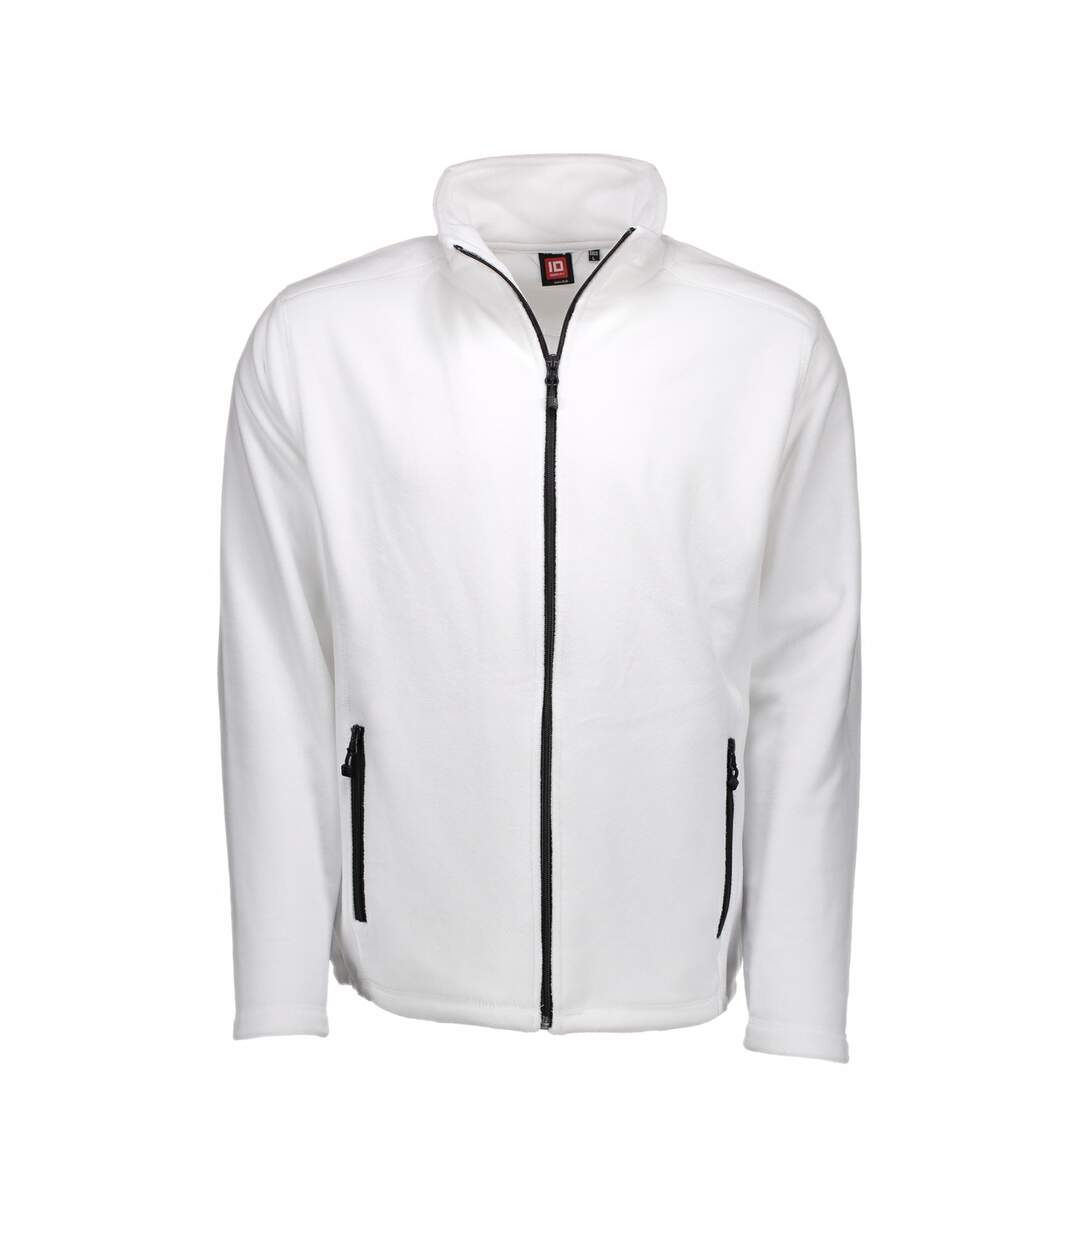 ID Mens Microfleece Full Zip Cardigan (White) - UTID423